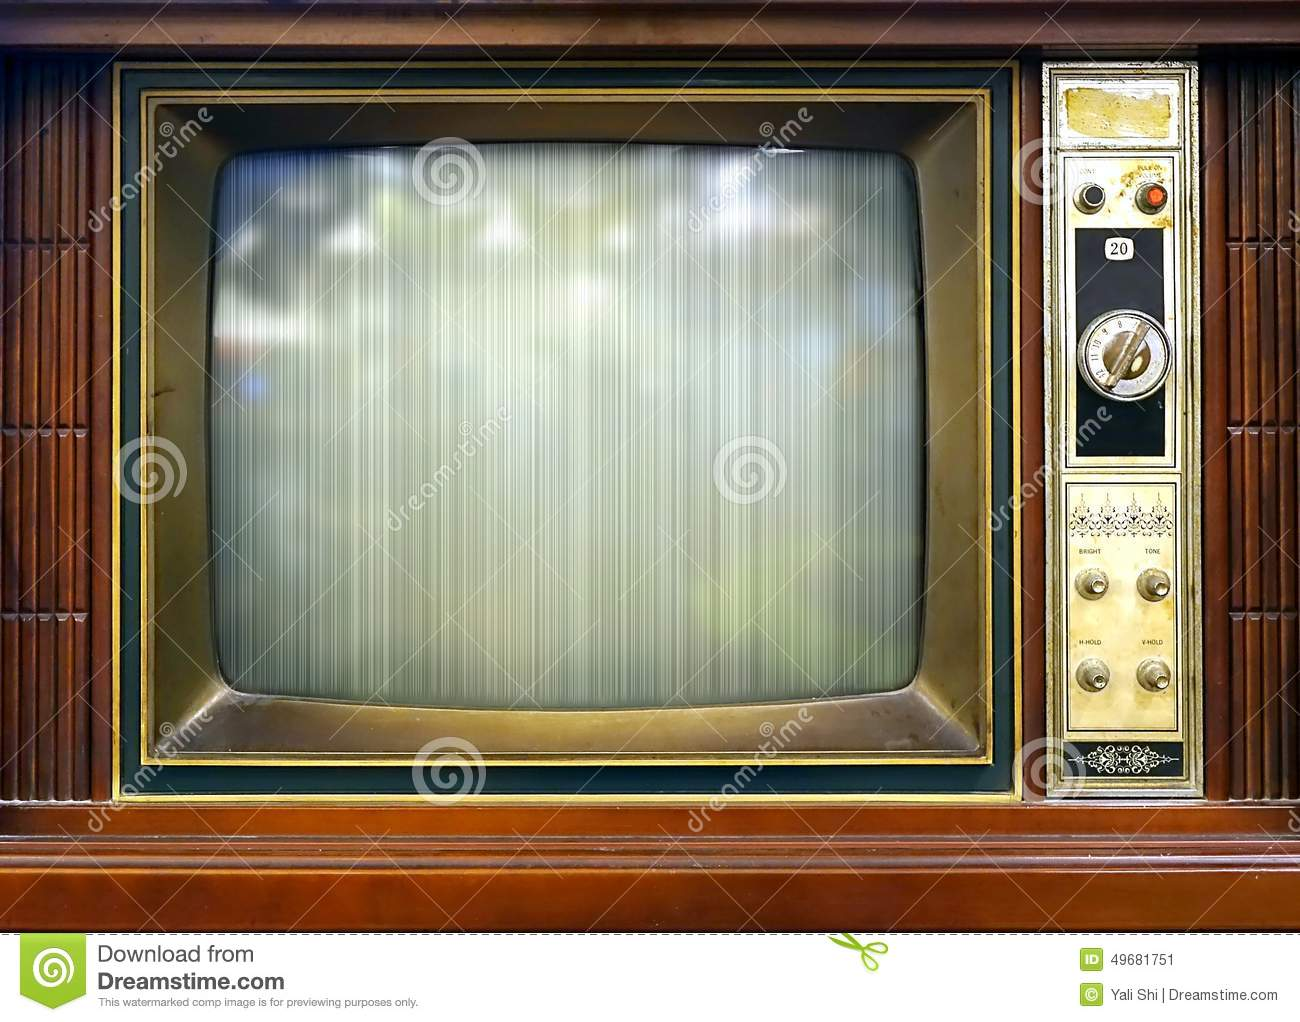 Bad Vintage Style Retro Style Television Set With Bad Picture Stock Image